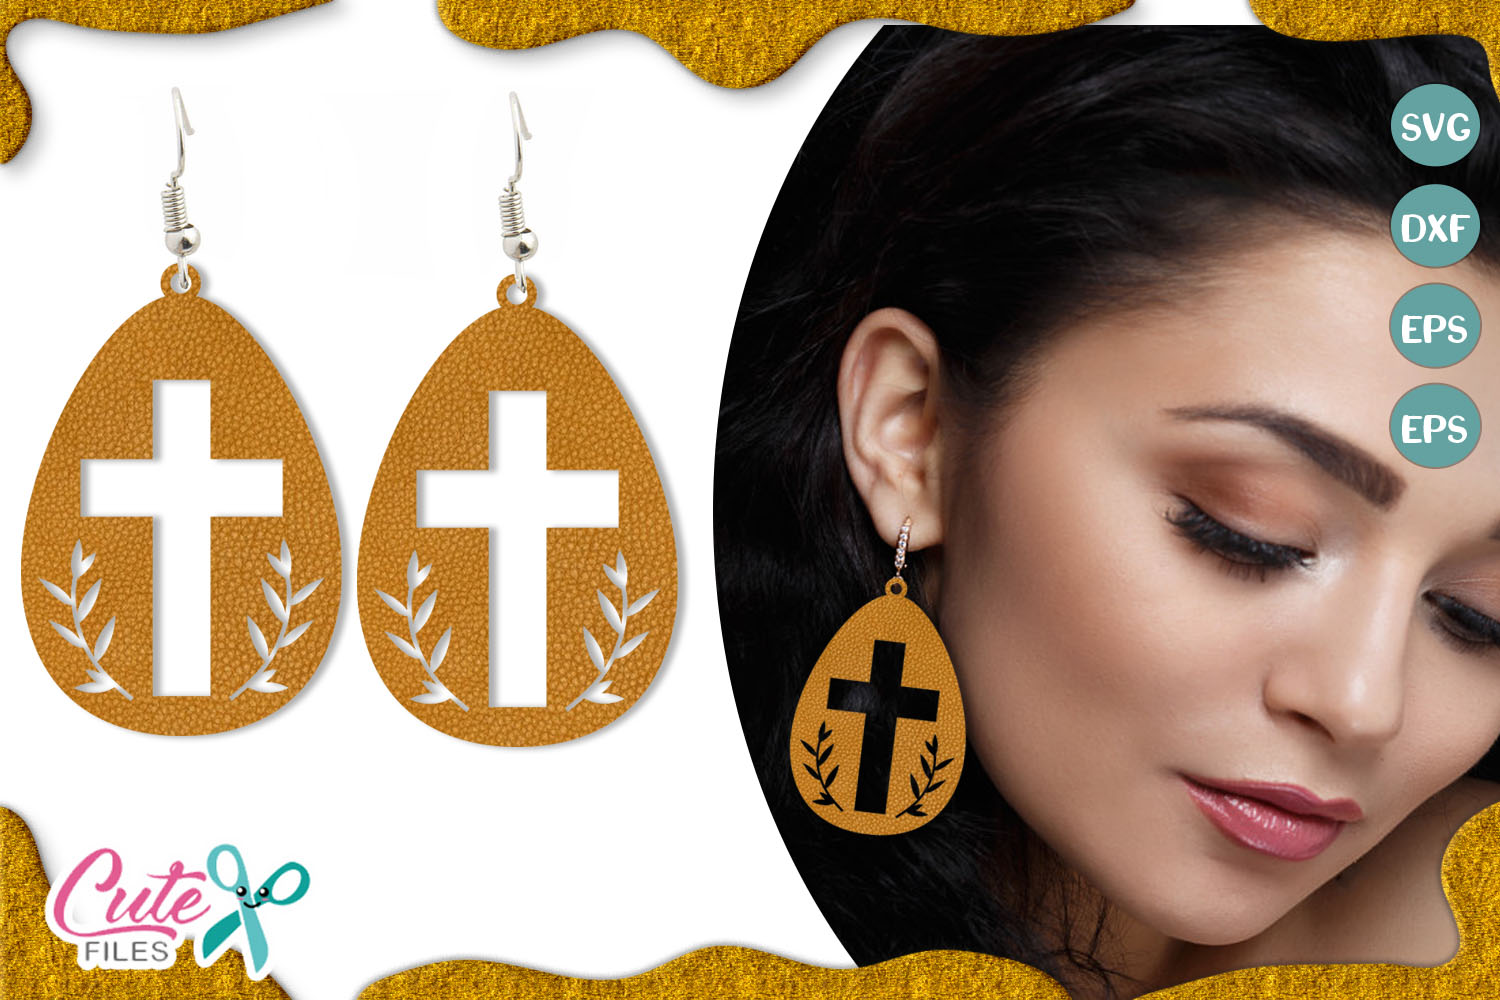 Download Free Easter Egg Earring Template Graphic By Cute Files Creative Fabrica for Cricut Explore, Silhouette and other cutting machines.